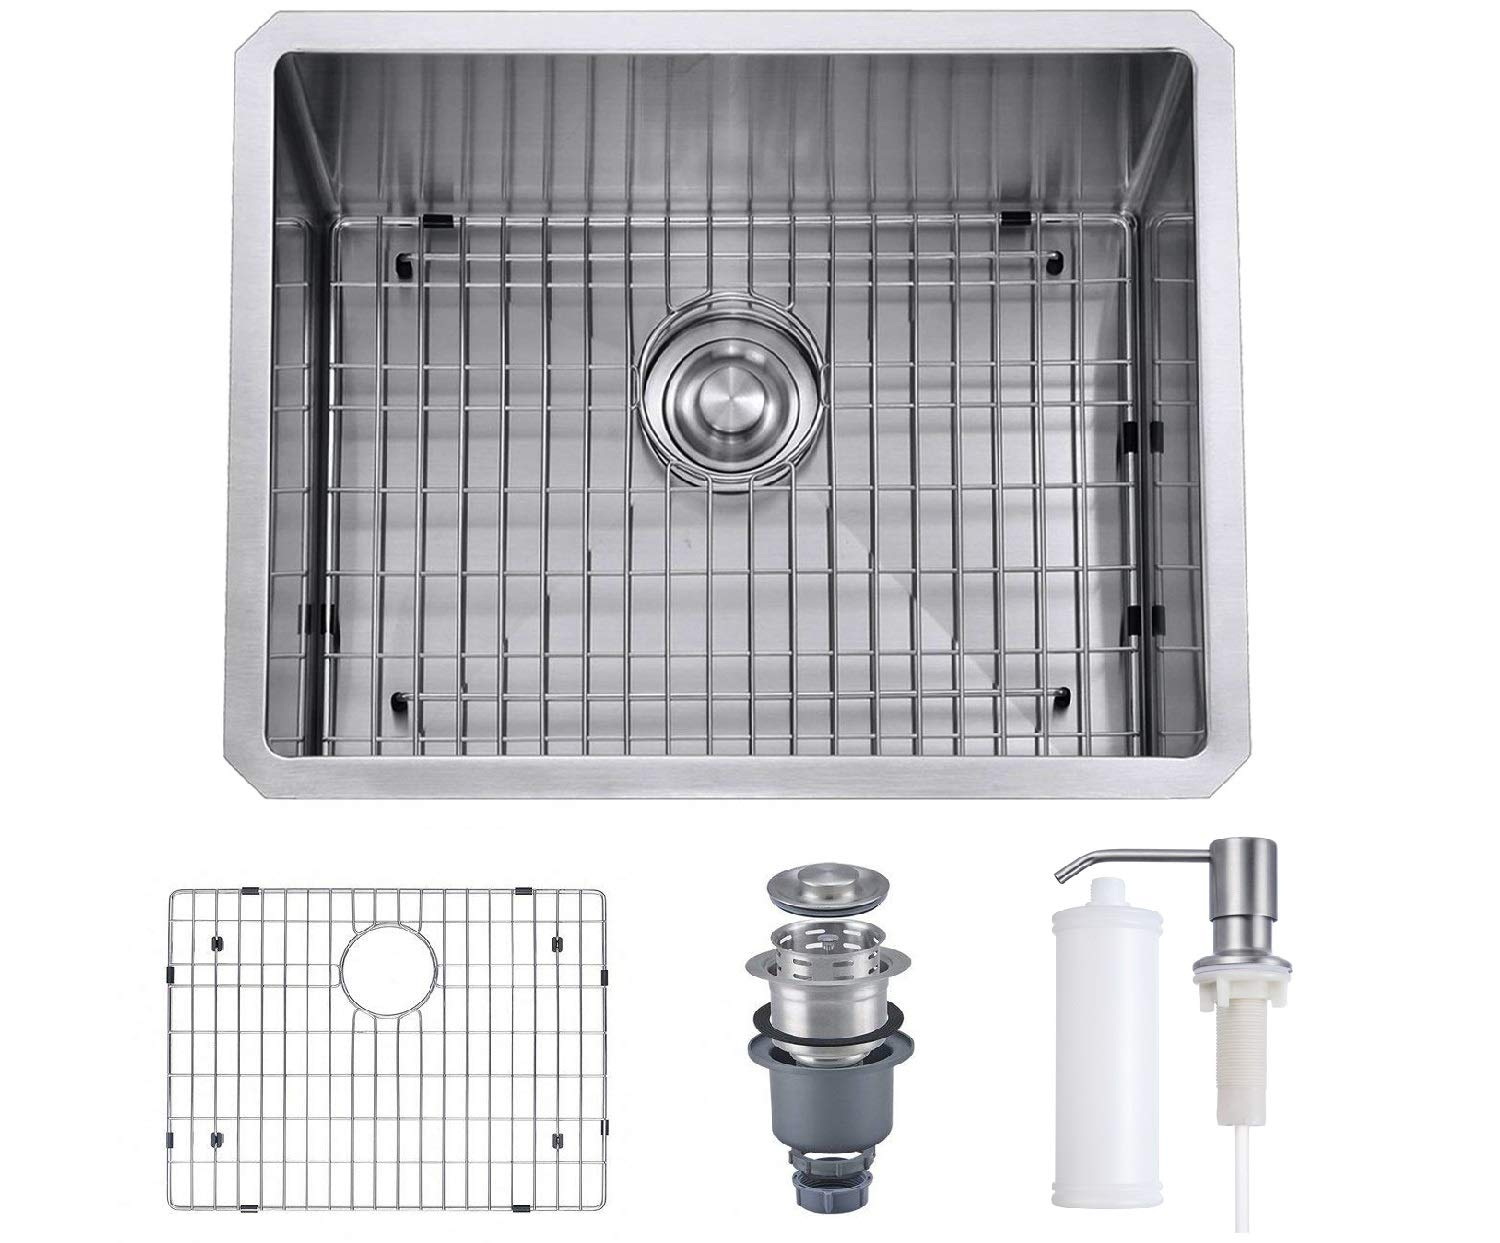 MOWA 23 inch Undermount 16 Gauge Stainless Steel Bar Prep Kitchen Sink, 10-inch deep laundry sink w/Soap Dispenser & Basket Strainer, Upgraded w/Perfect Drainage, Commercial Handmade Stainless Sink